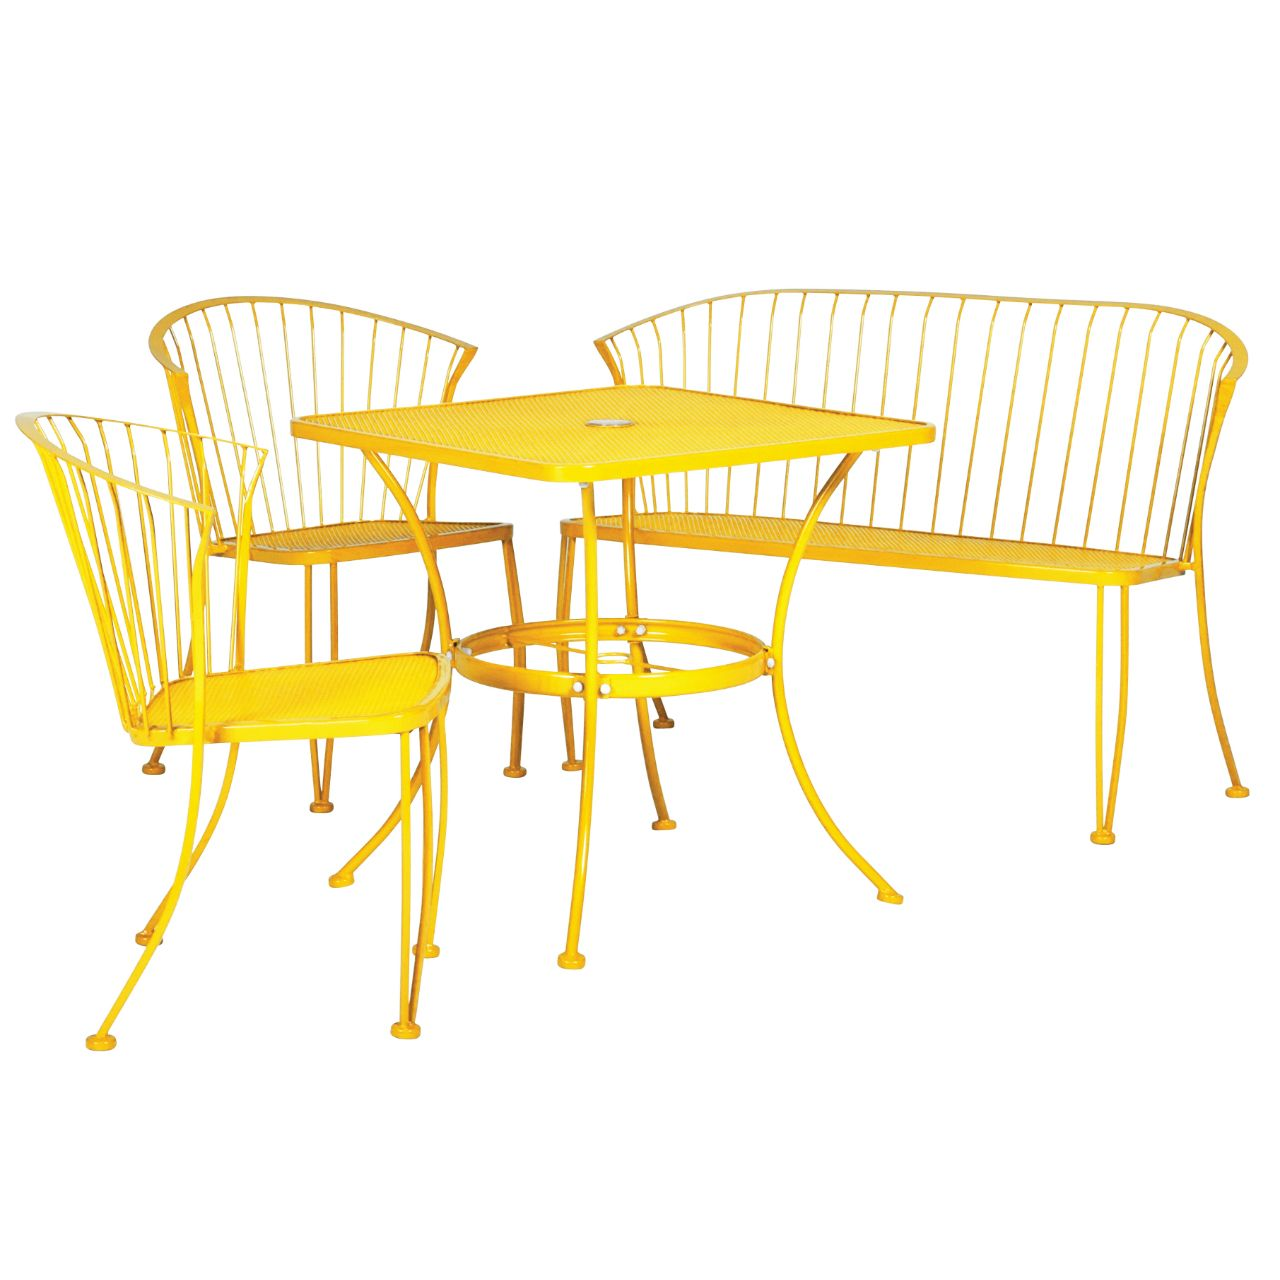 Patio Furniture Abq Nm: Pinecrest 4-Piece Bistro Set - Yellow